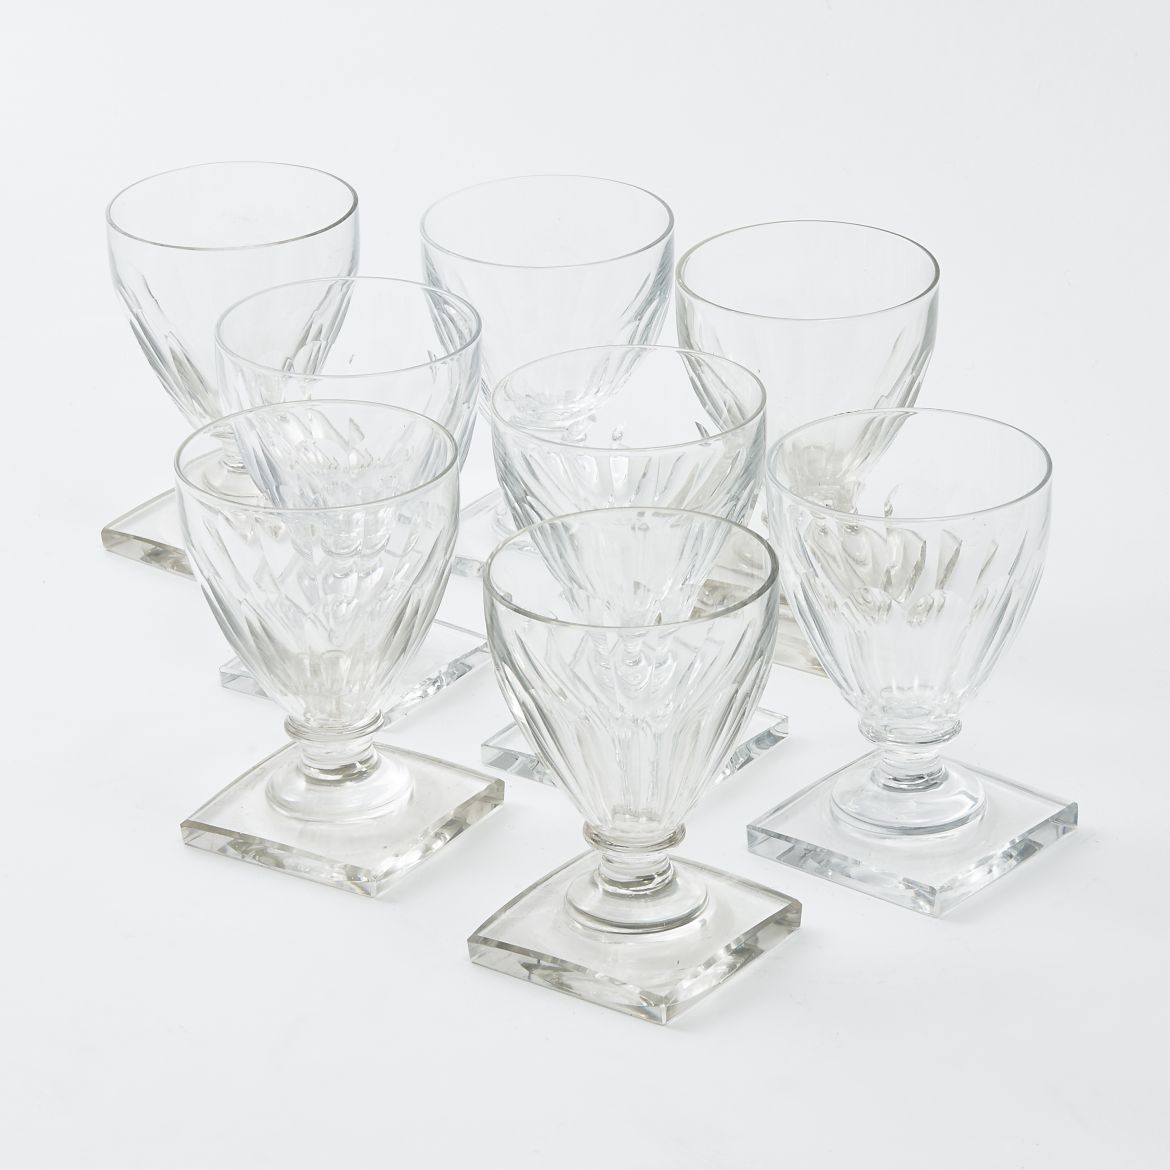 Eight Gondole Val St Lambert Glasses